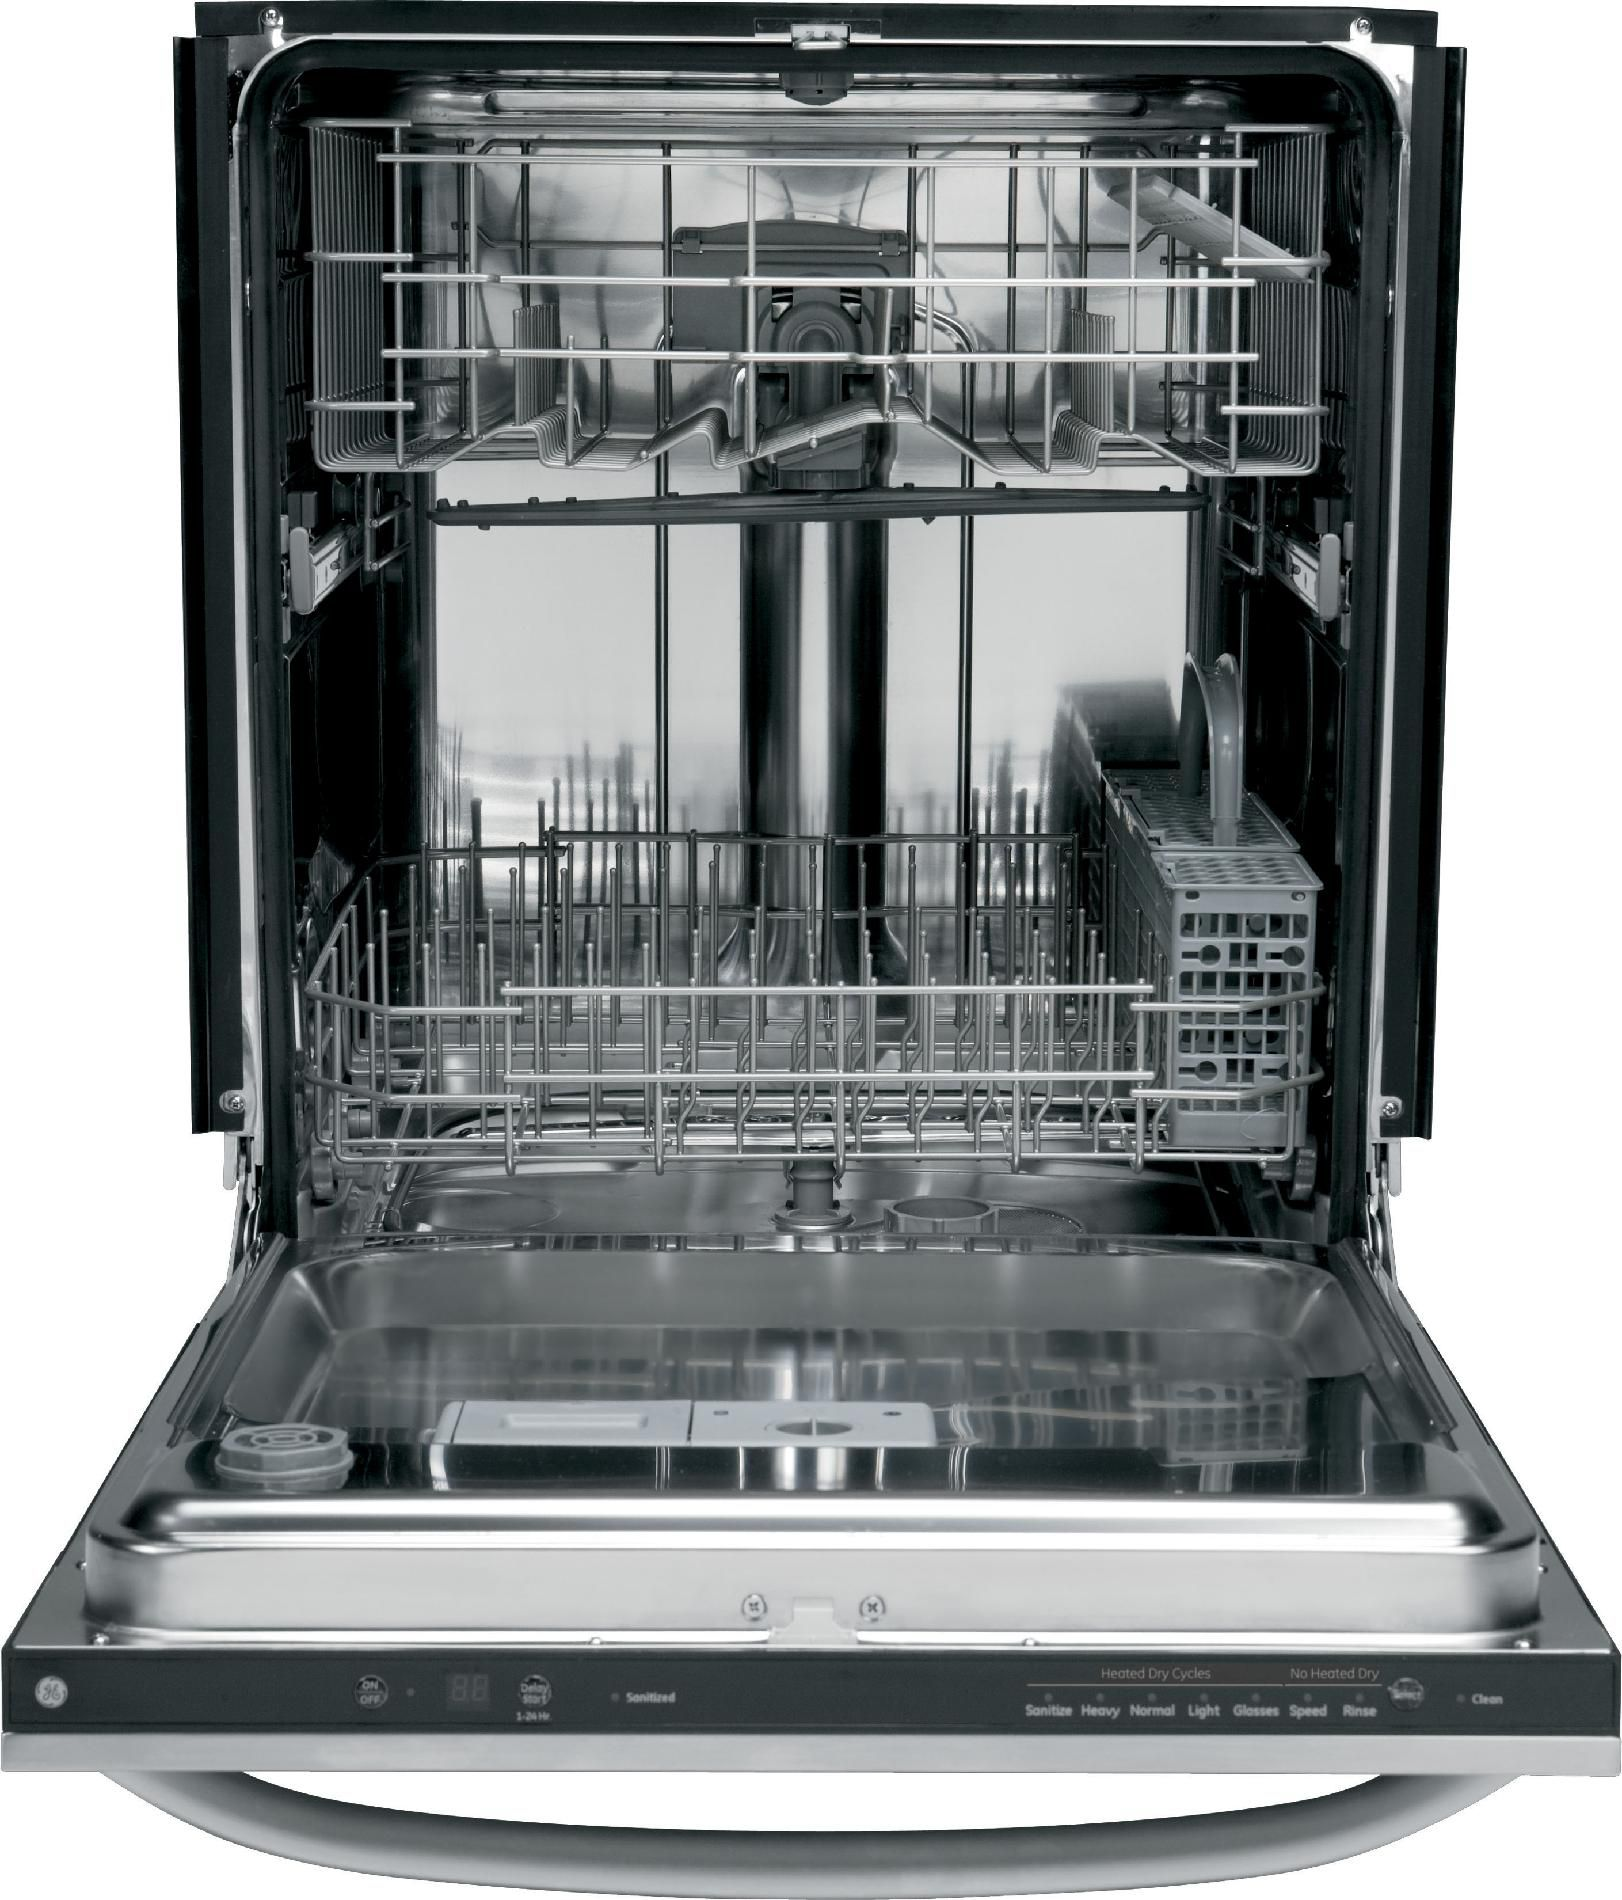 "GE 24"" Built-In Dishwasher - Stainless Steel"